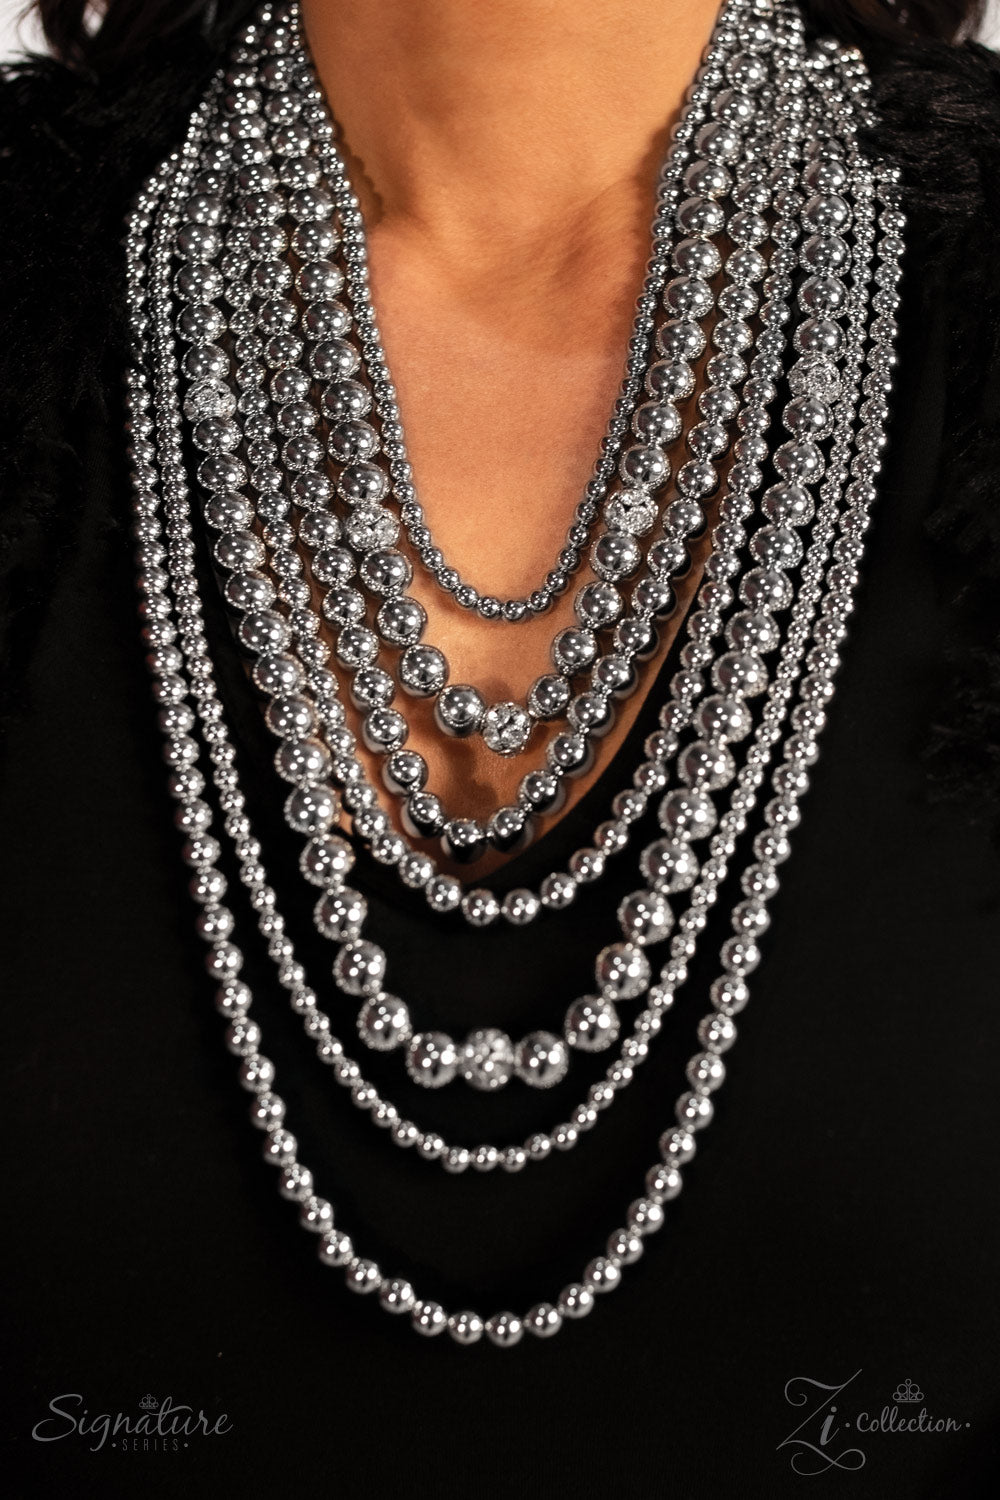 Paparazzi Accessories The Tina Zi Collection Necklaces - Lady T Accessories